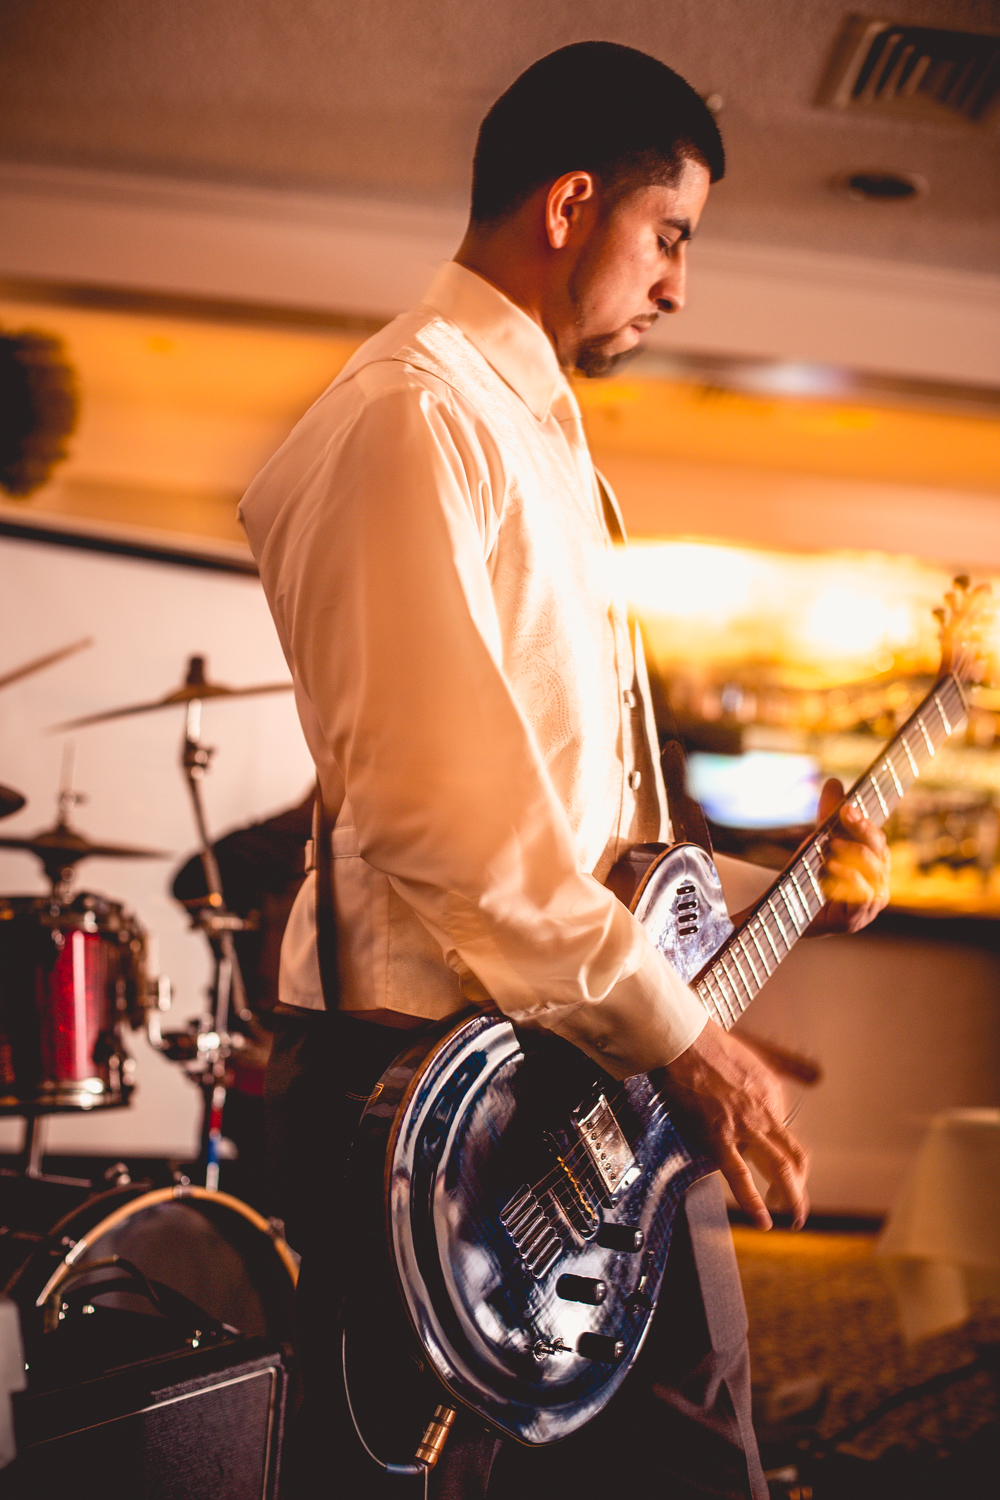 Alex and his band  performing at his own wedding.